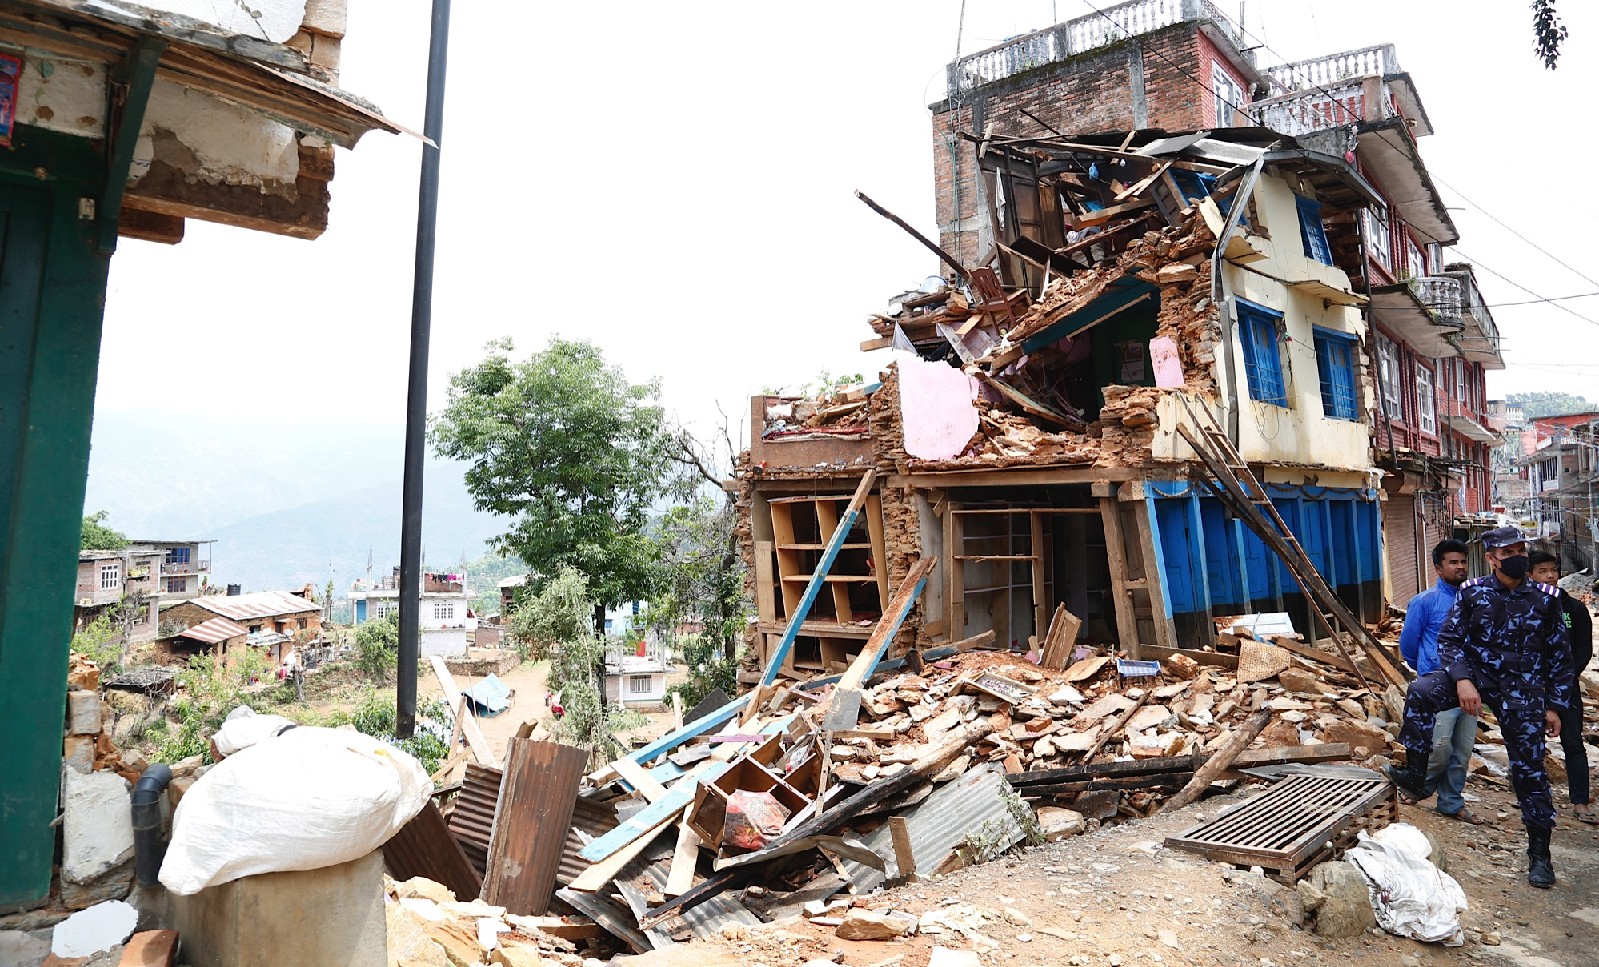 Collapsed buildings in earthquake-hit Chautara, Nepal. Photo credit: DFID@flickr